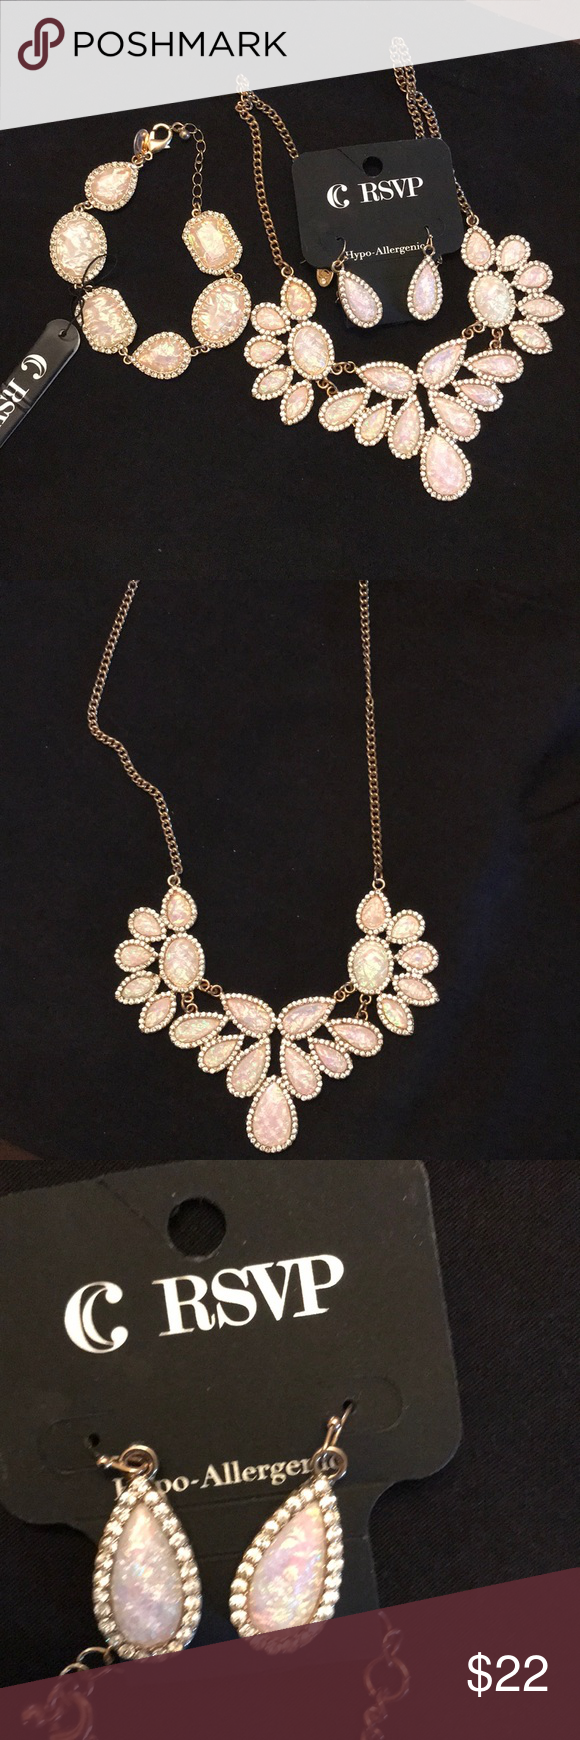 Nwt necklace bracelet and earrings set beautiful gold necklace